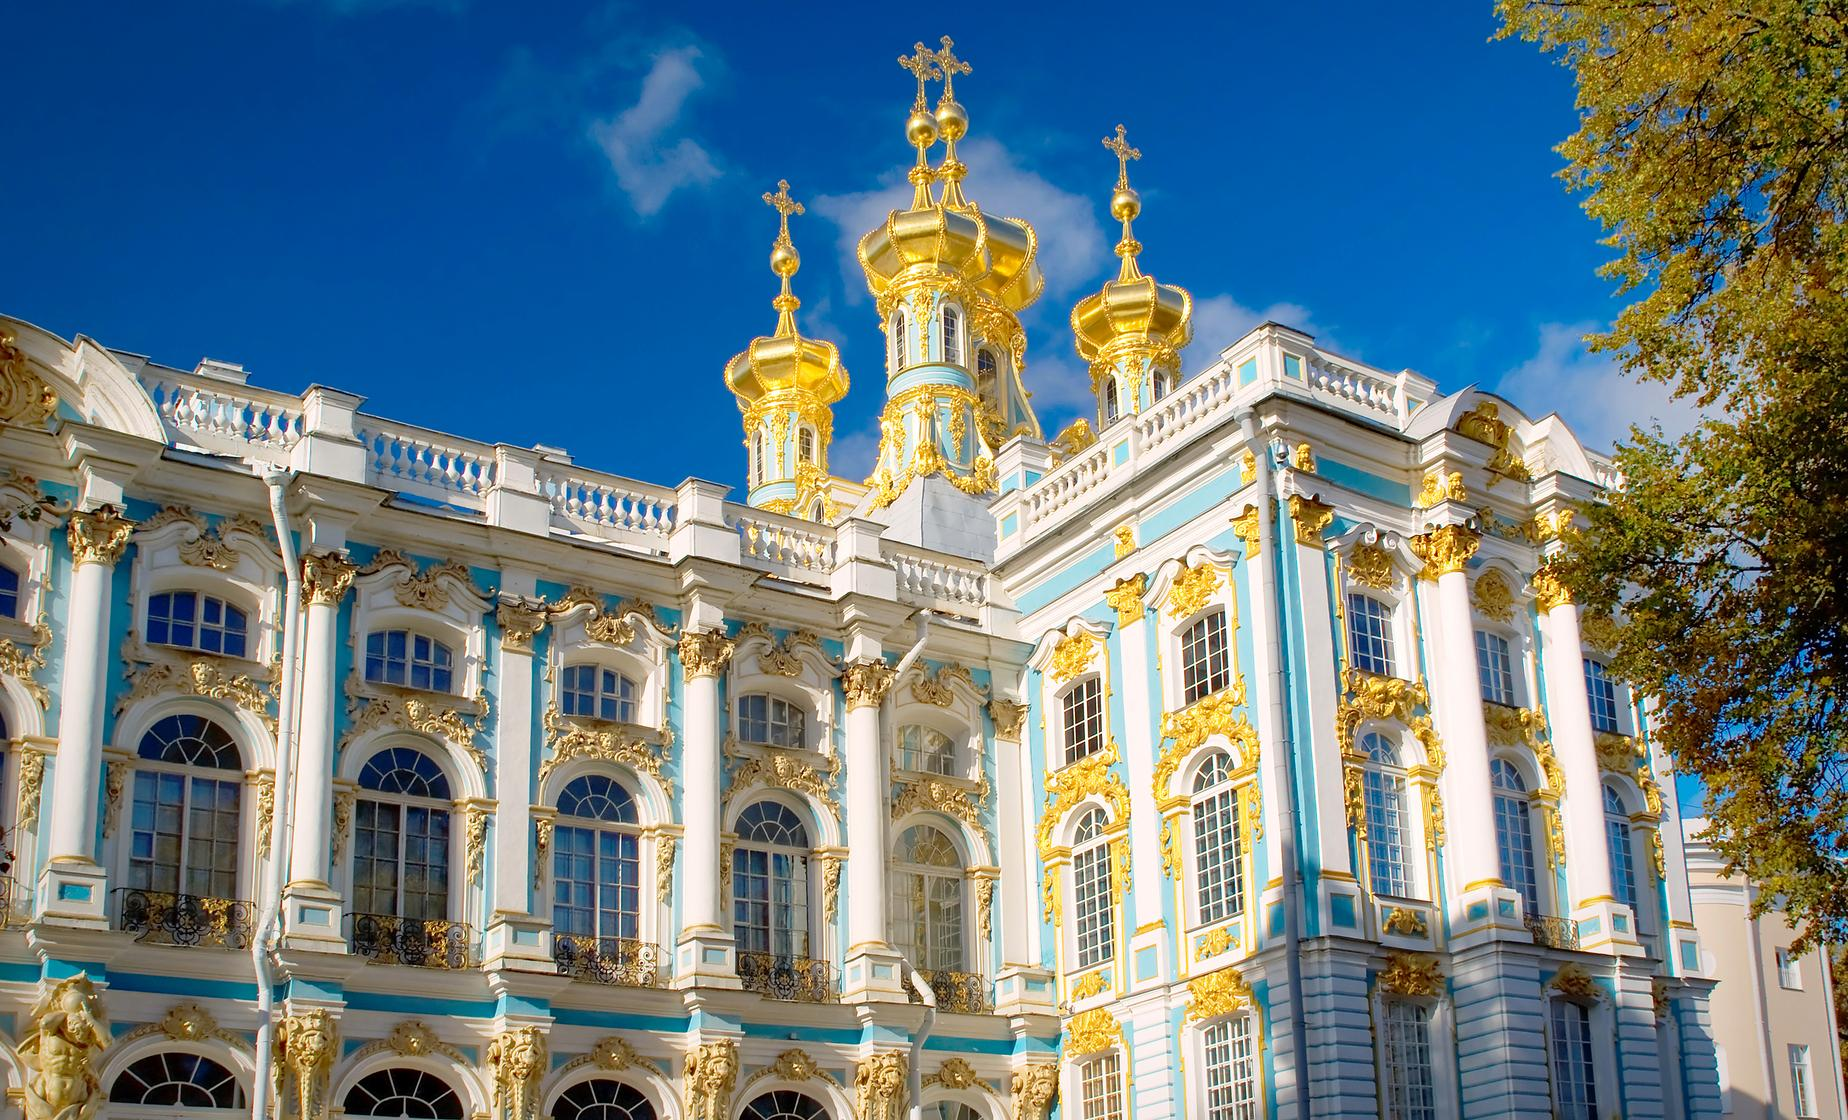 Private Catherine's Palace and the Hermitage Tour from St. Petersburg (Pushkin) (Visas Included)